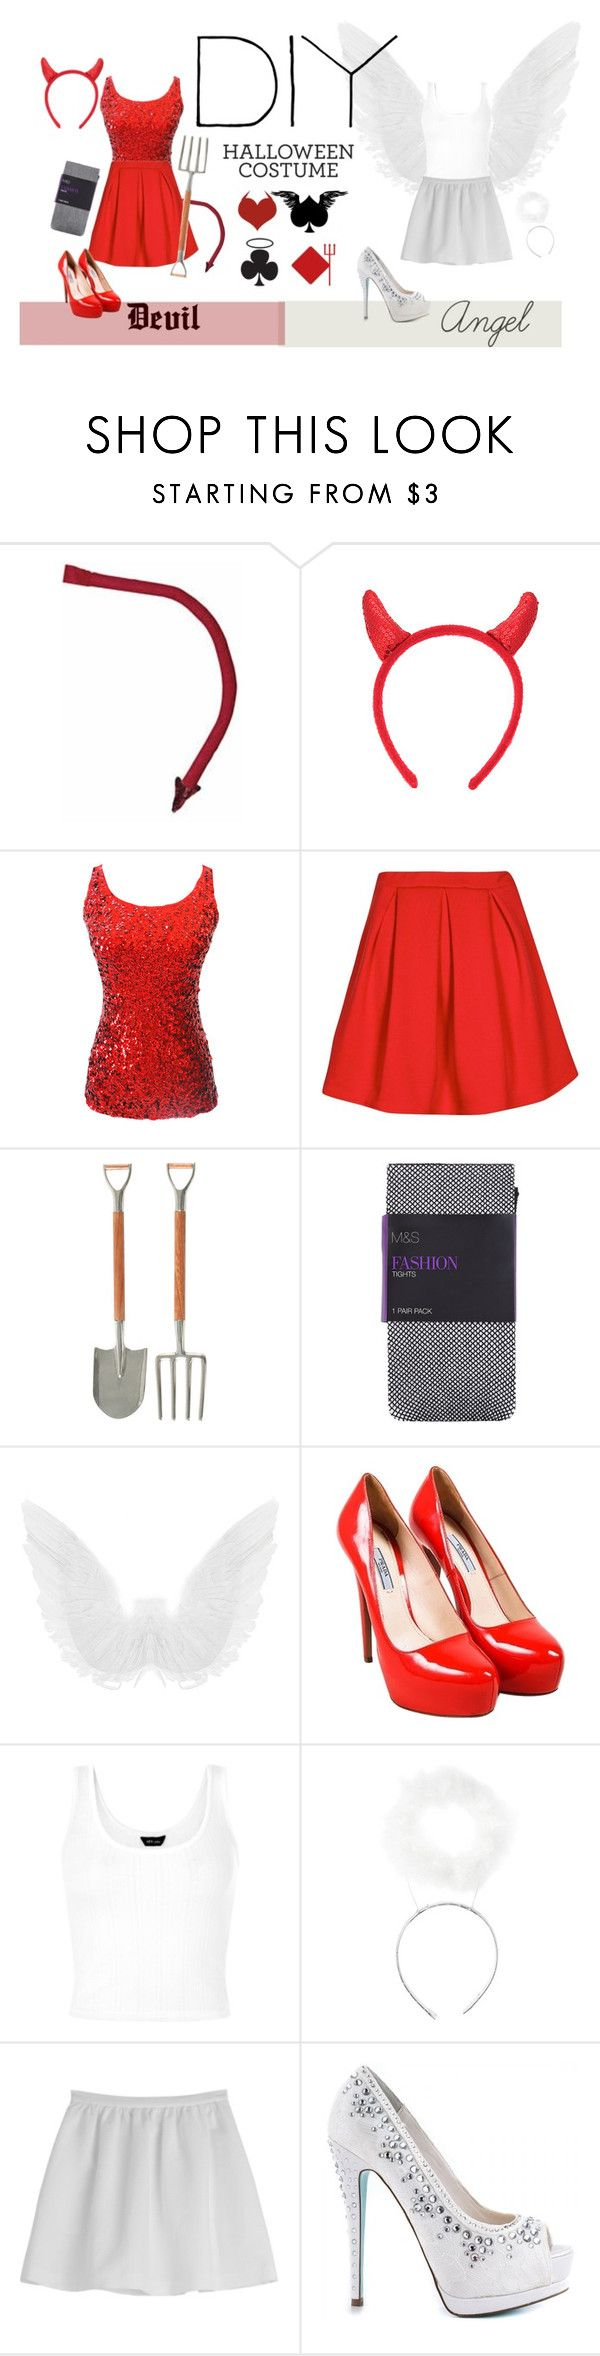 """angel & devil diy costume"" by mia-v1 ❤ liked on Polyvore featuring Vagabond House, Prada, Tara Jarmon, Betsey Johnson, DIY, Halloween, DIYHalloween and diycostume"